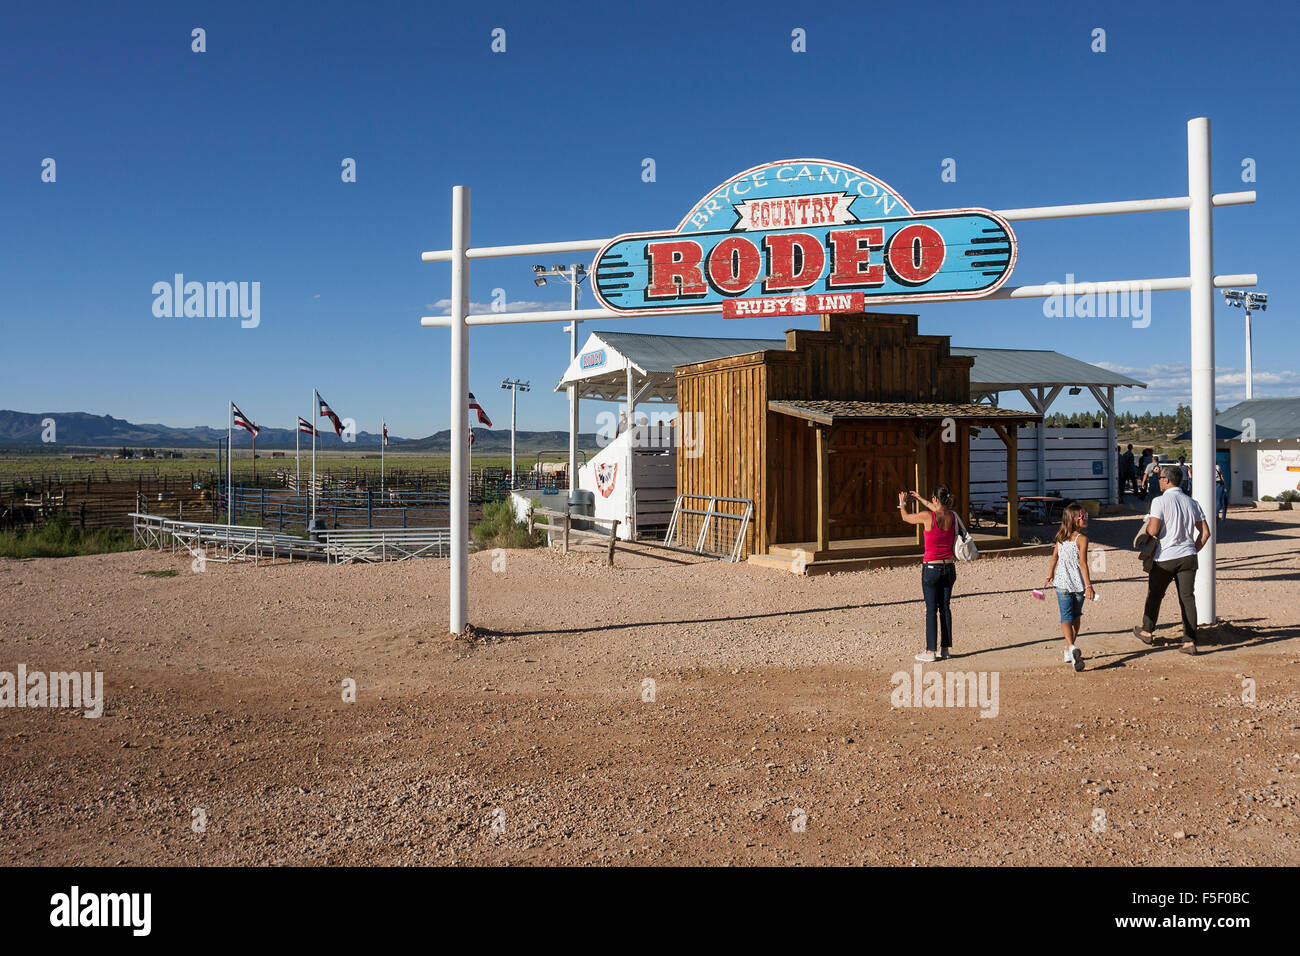 rodeo arena bryce canyon city utah united states stock. Black Bedroom Furniture Sets. Home Design Ideas